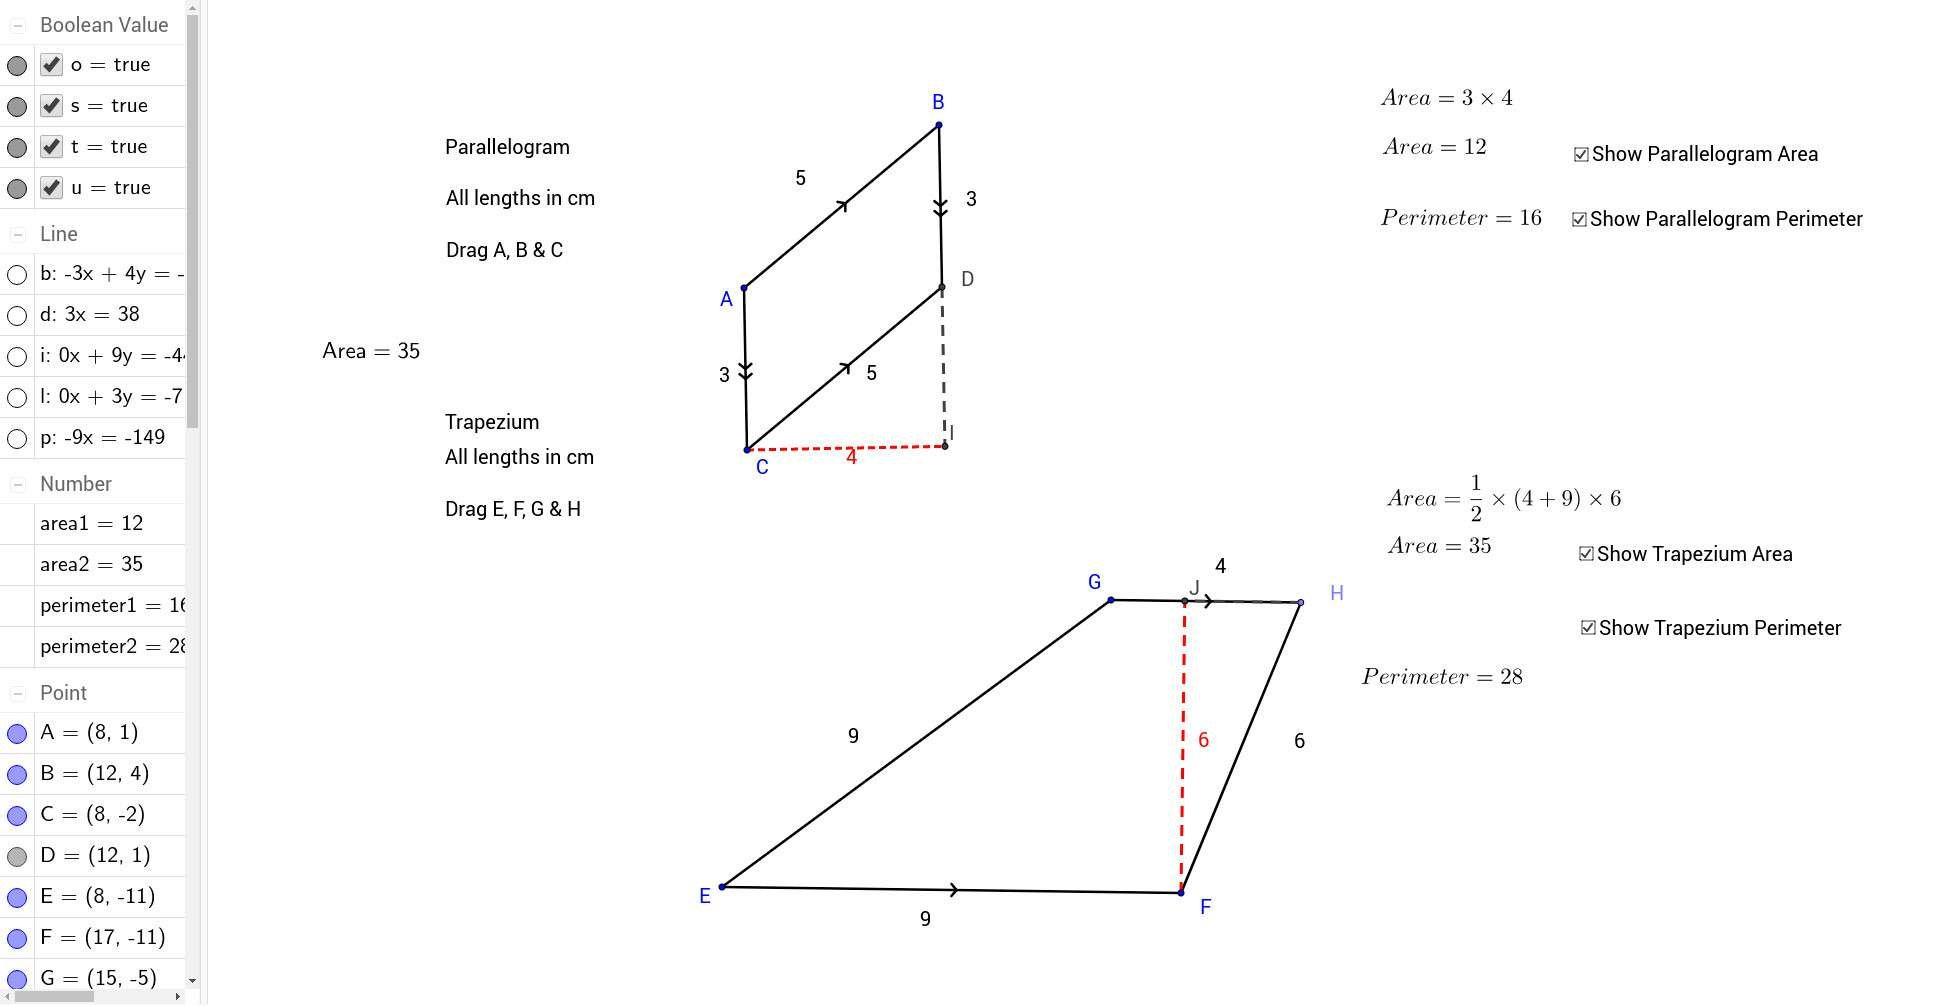 Proving Triangles Congruent Worksheet Answers  Worksheet Idea Template Intended For Triangle Proofs Worksheet Answers